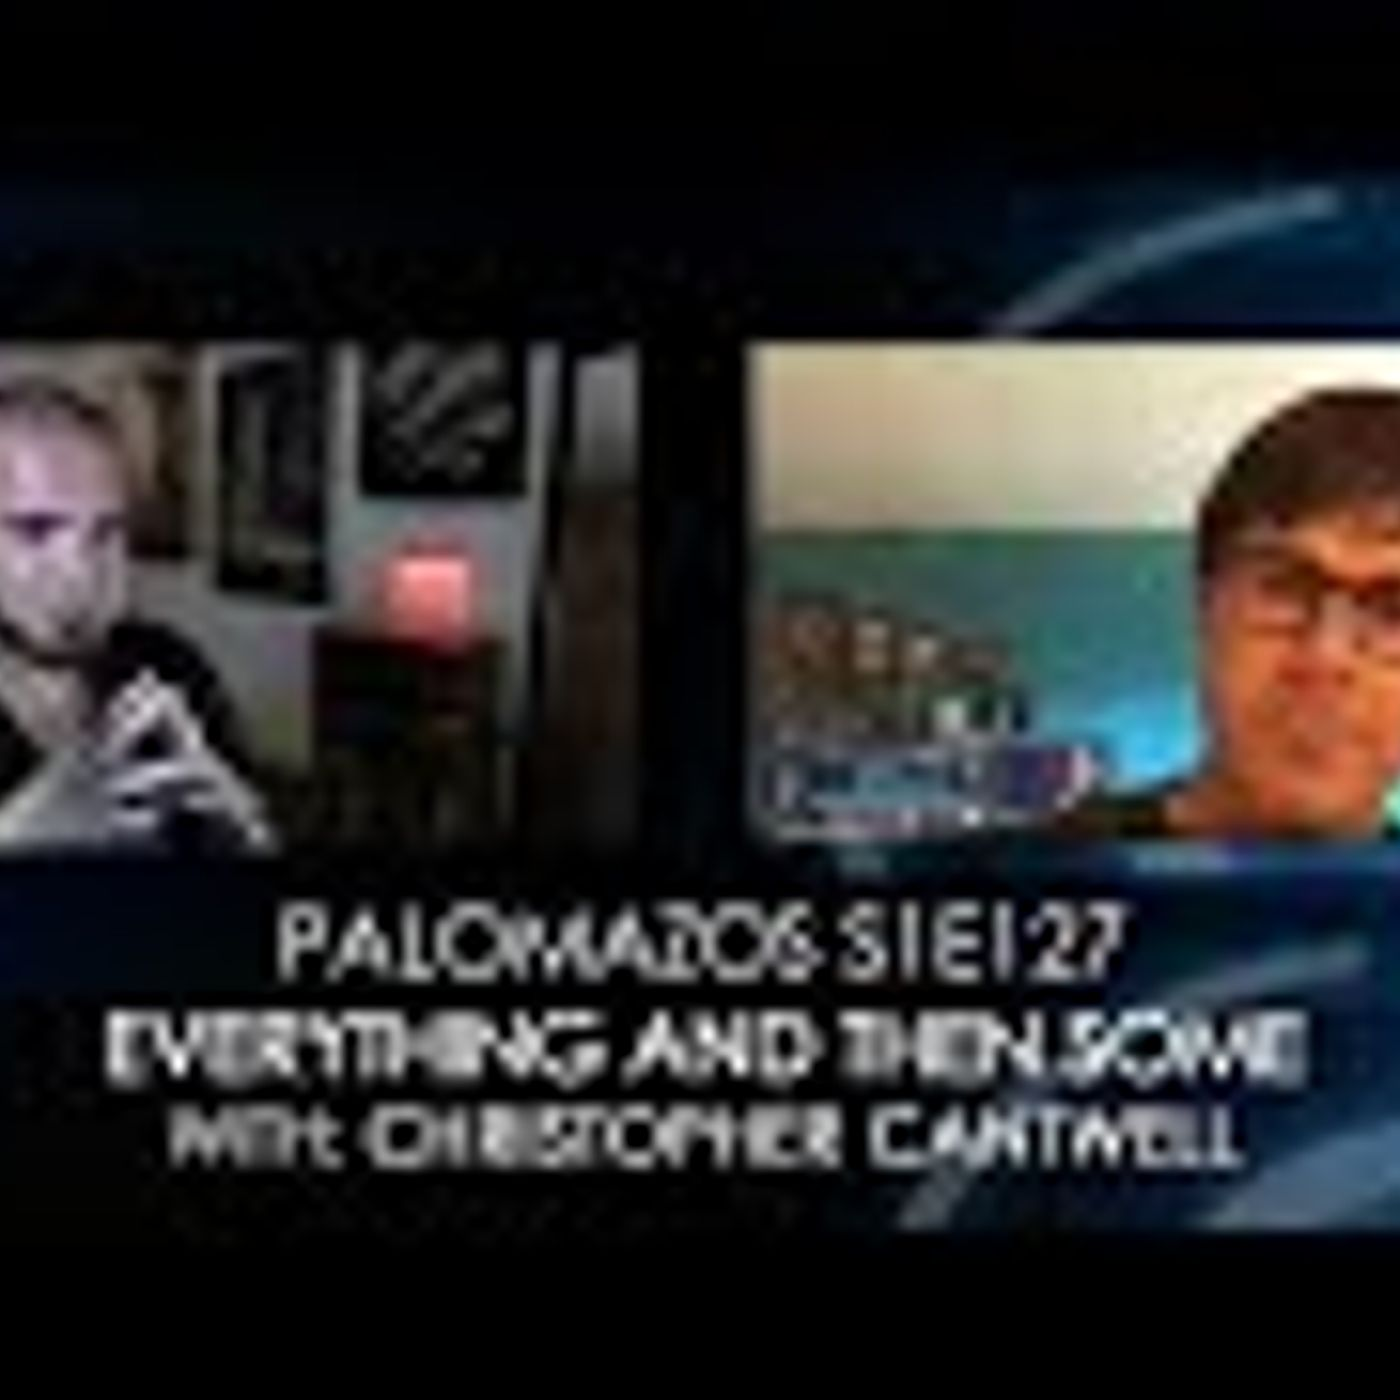 Palomazos S1E127 - Everything and then Some (with Christopher Cantwell)